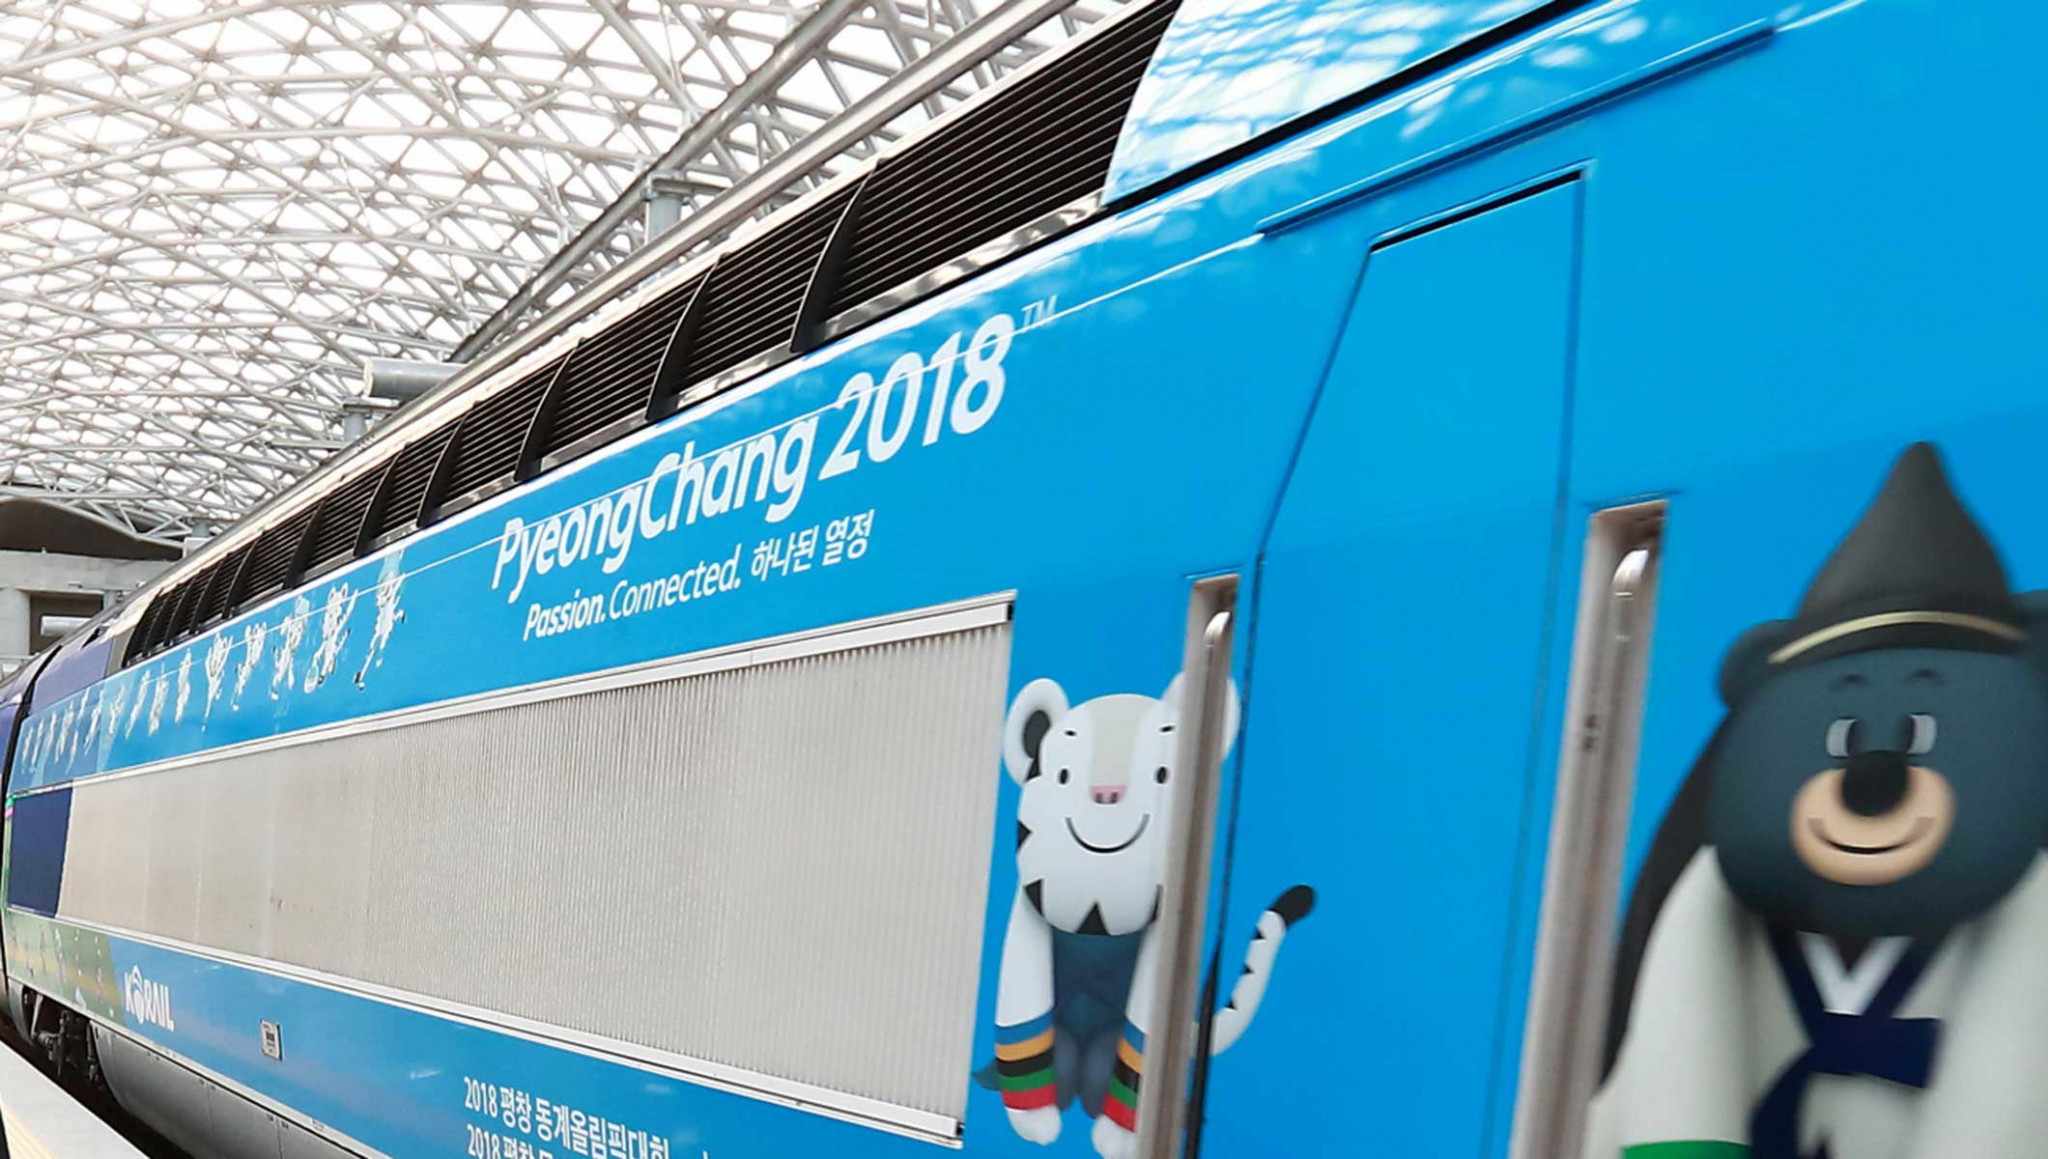 The high speed train line is expected to travel fans from Seoul to Pyeongchang during the Games ©IOC